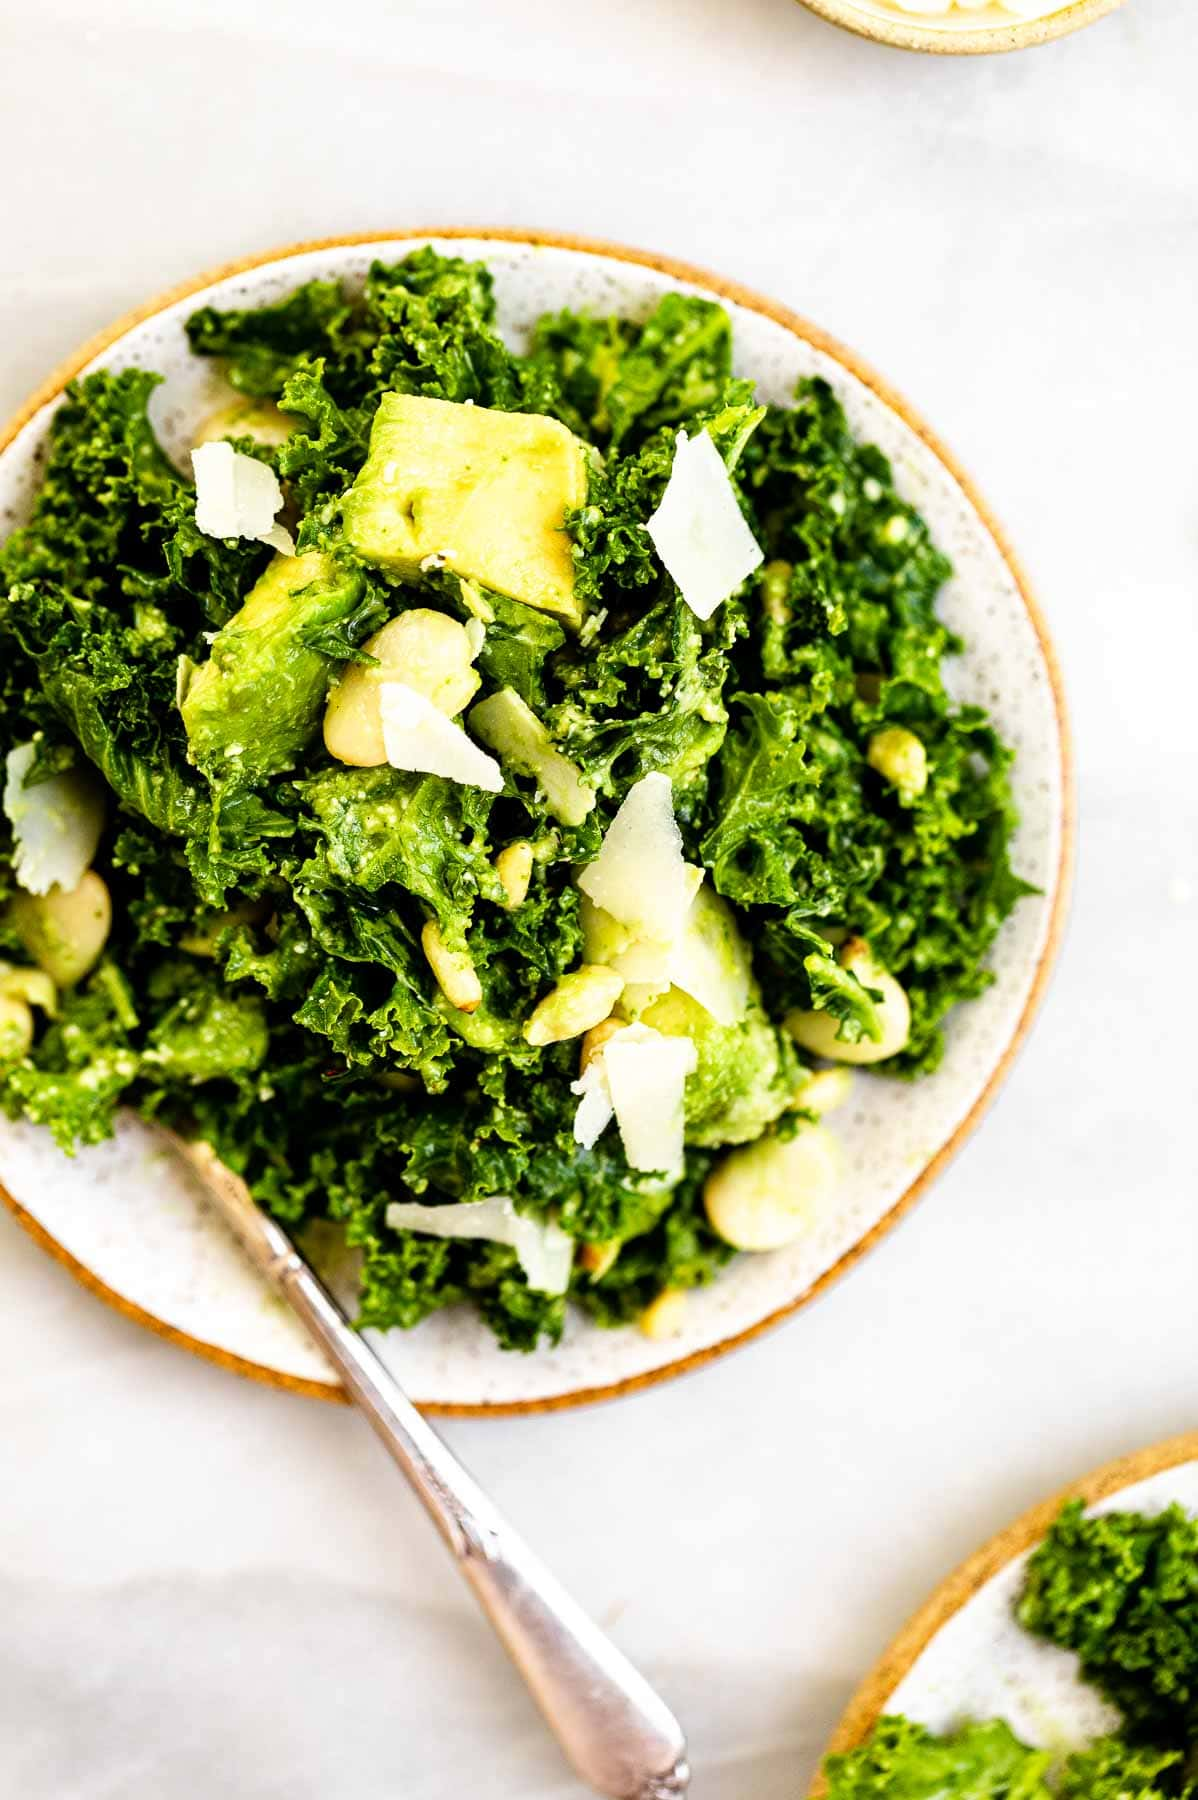 Kale avocado salad on two plates with a fork on the side.